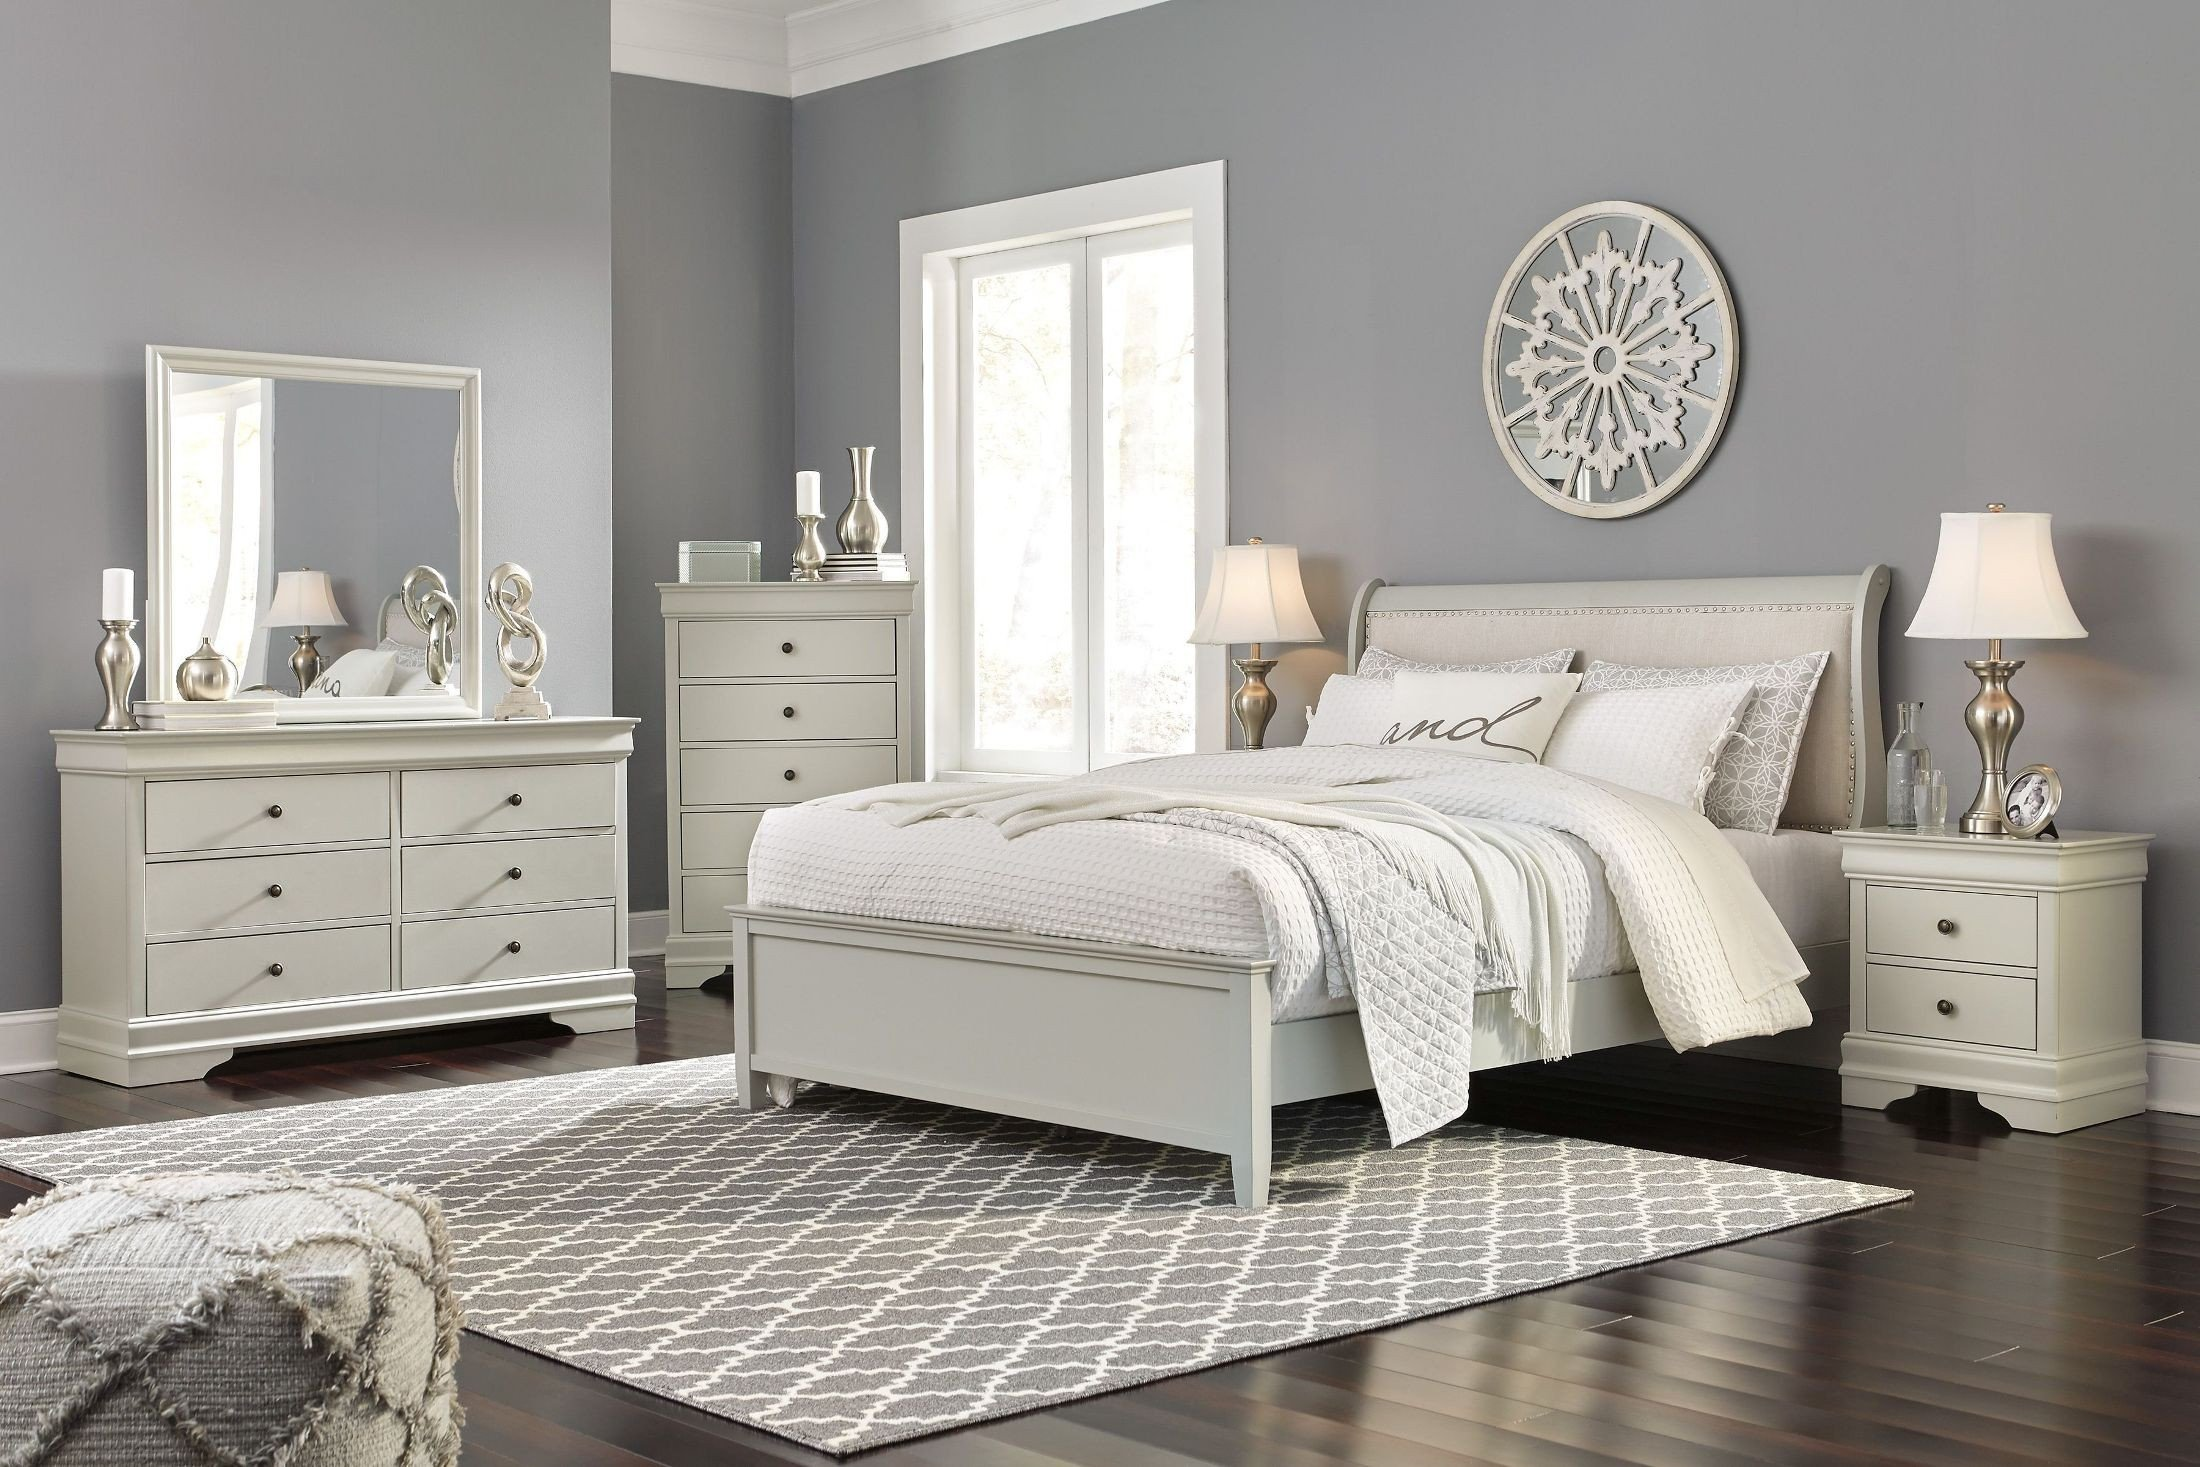 Ashley Furniture Canopy Bedroom Set Beautiful Emma Mason Signature Jarred 5 Piece Sleigh Bedroom Set In Gray